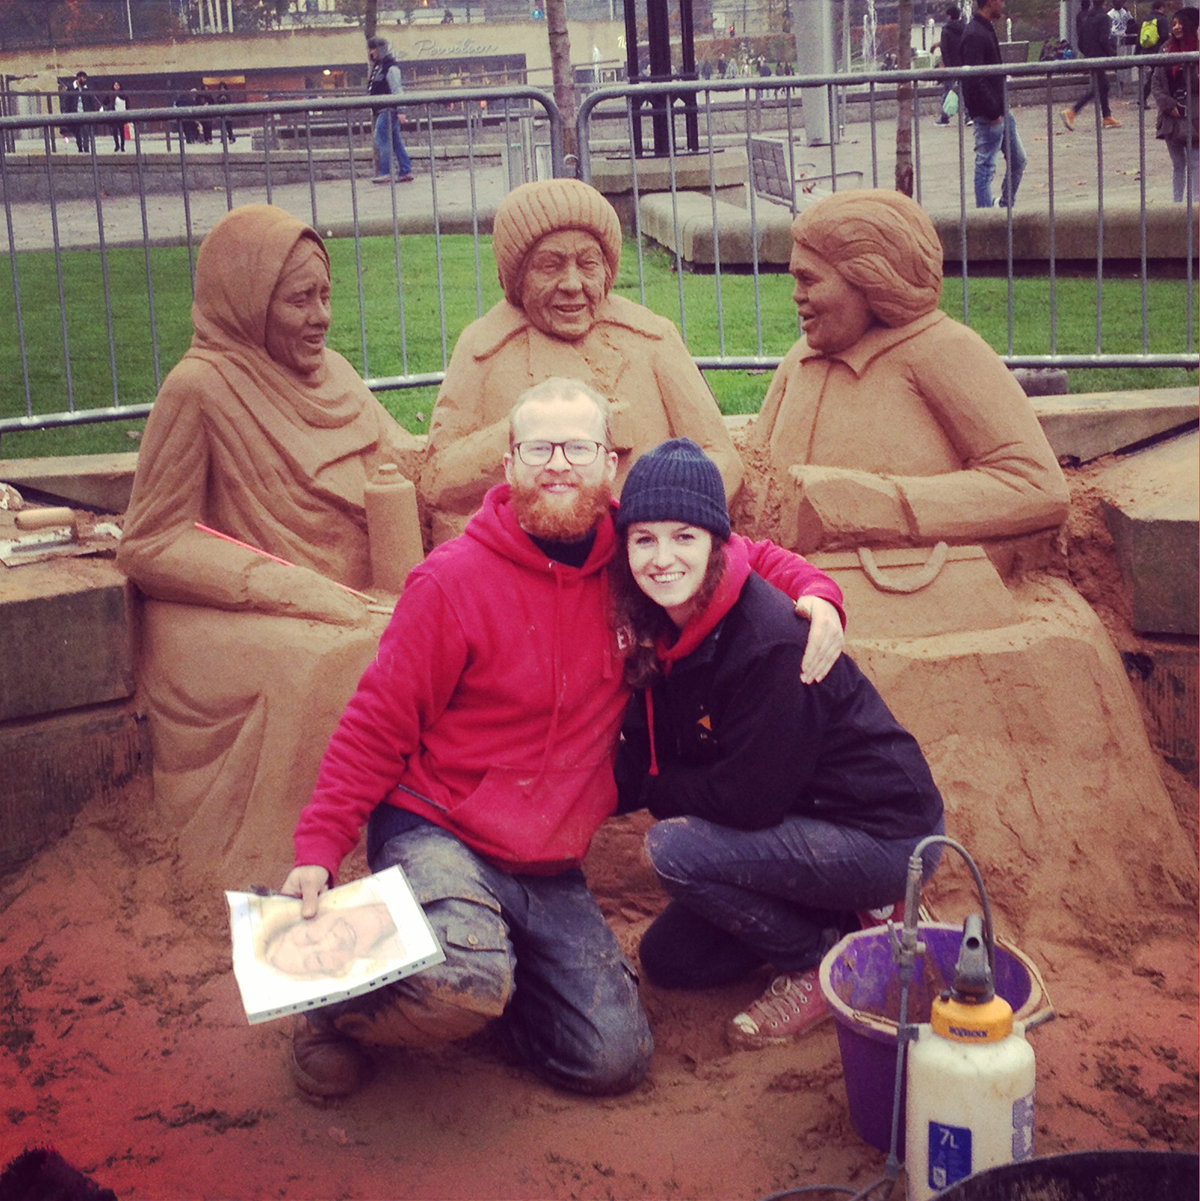 Jamie Wardley and Claire Jamieson, sand sculptors working on the Bradford sand sculpture event